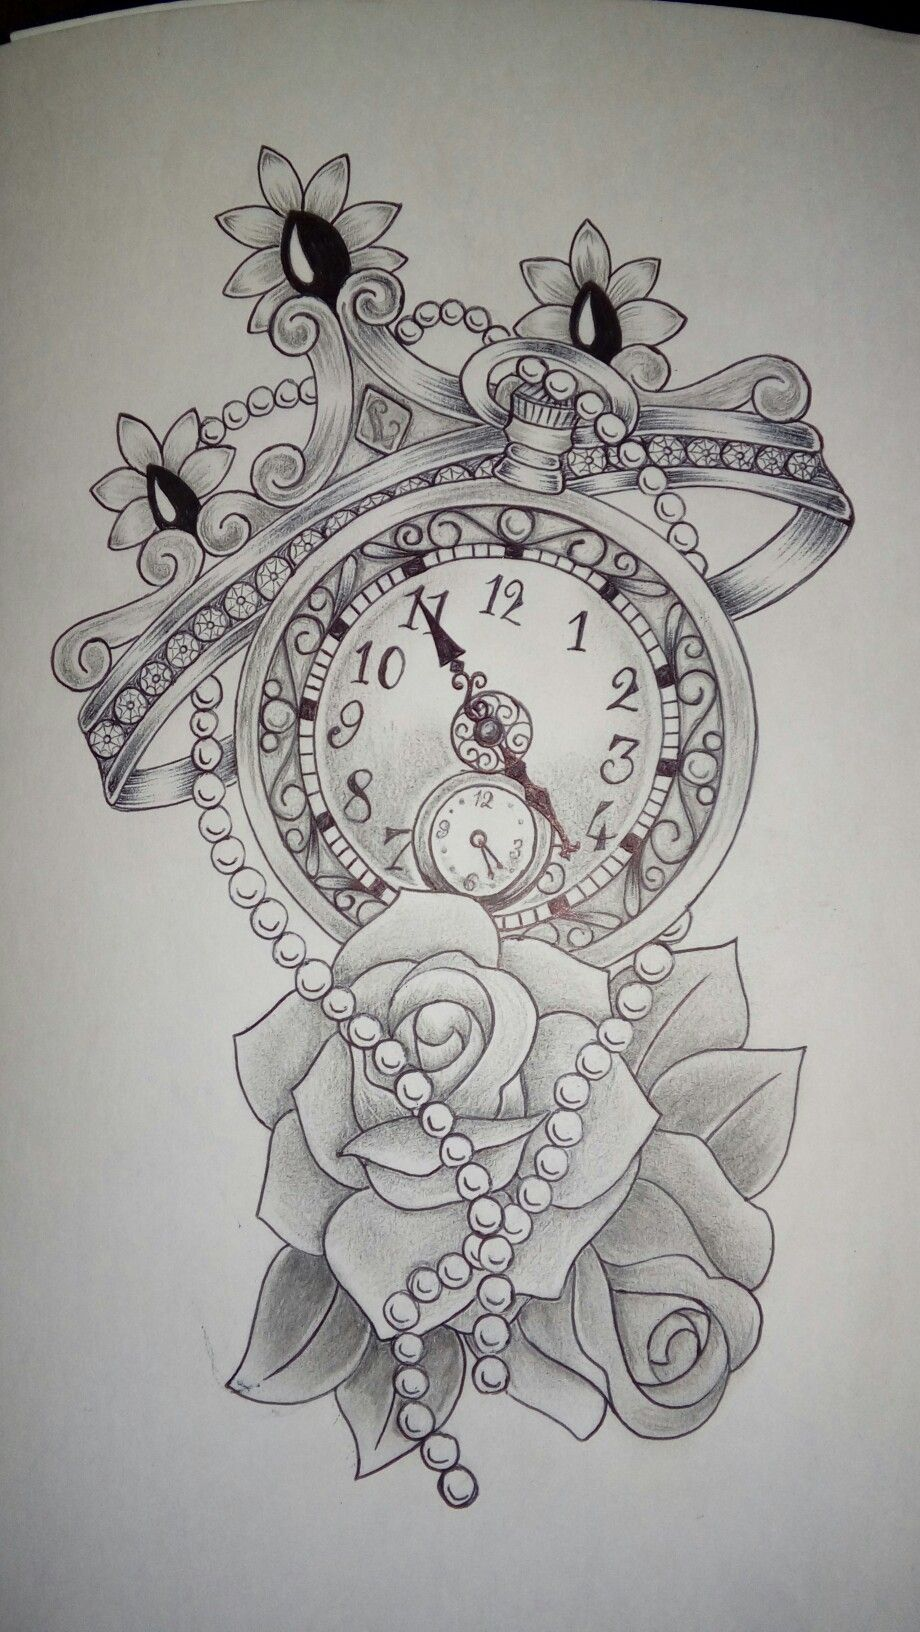 One Watch With A Crown One Watch With A Rose Tattoos For Daughters Tattoo Designs Tattoos